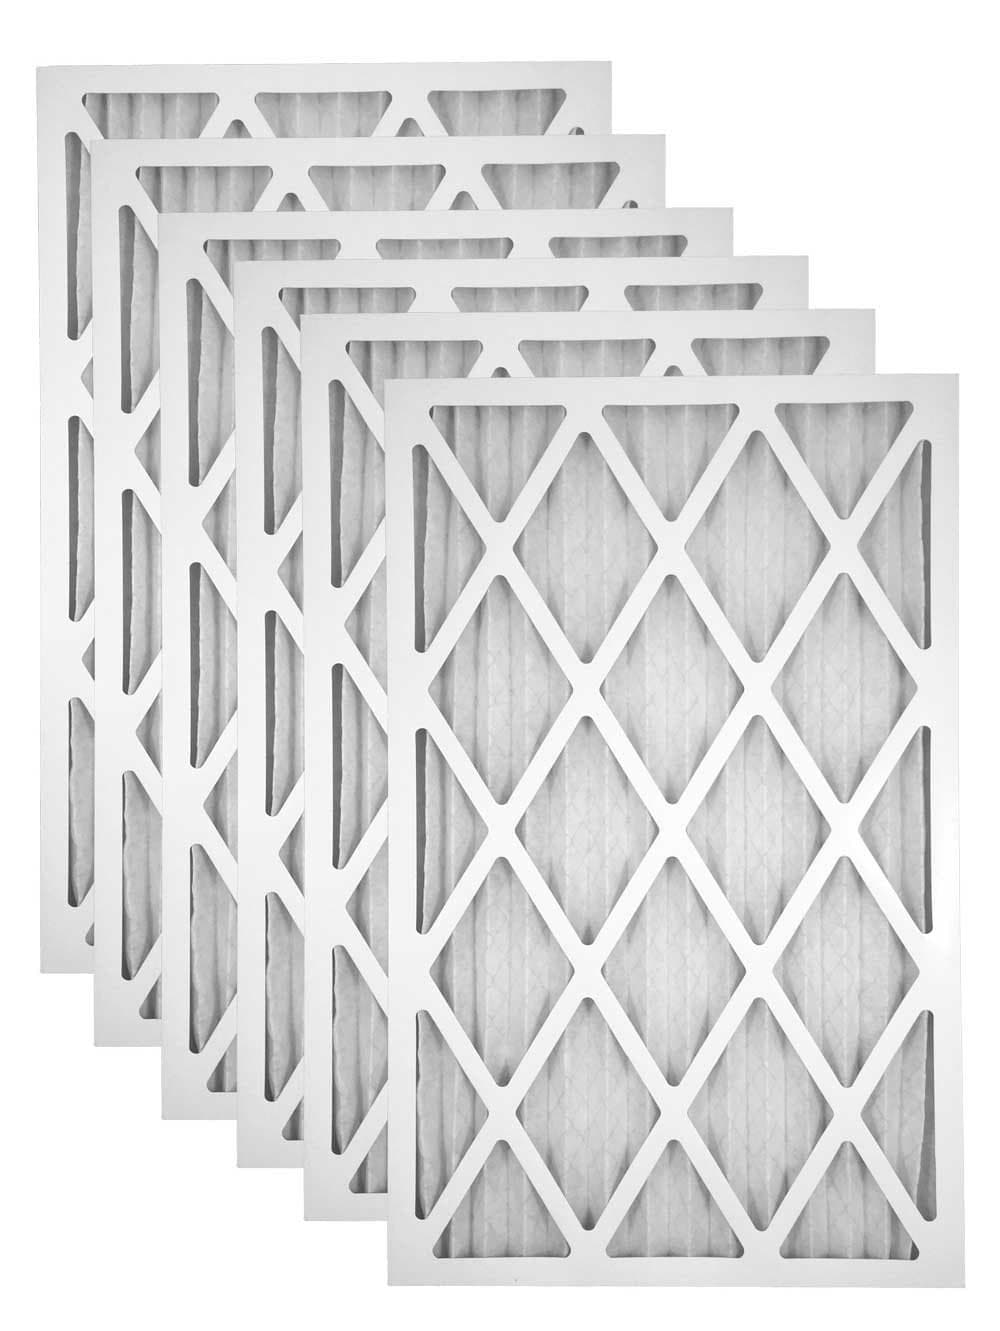 10x24x1 Merv 11 AC Furnace Filter - Case of 6